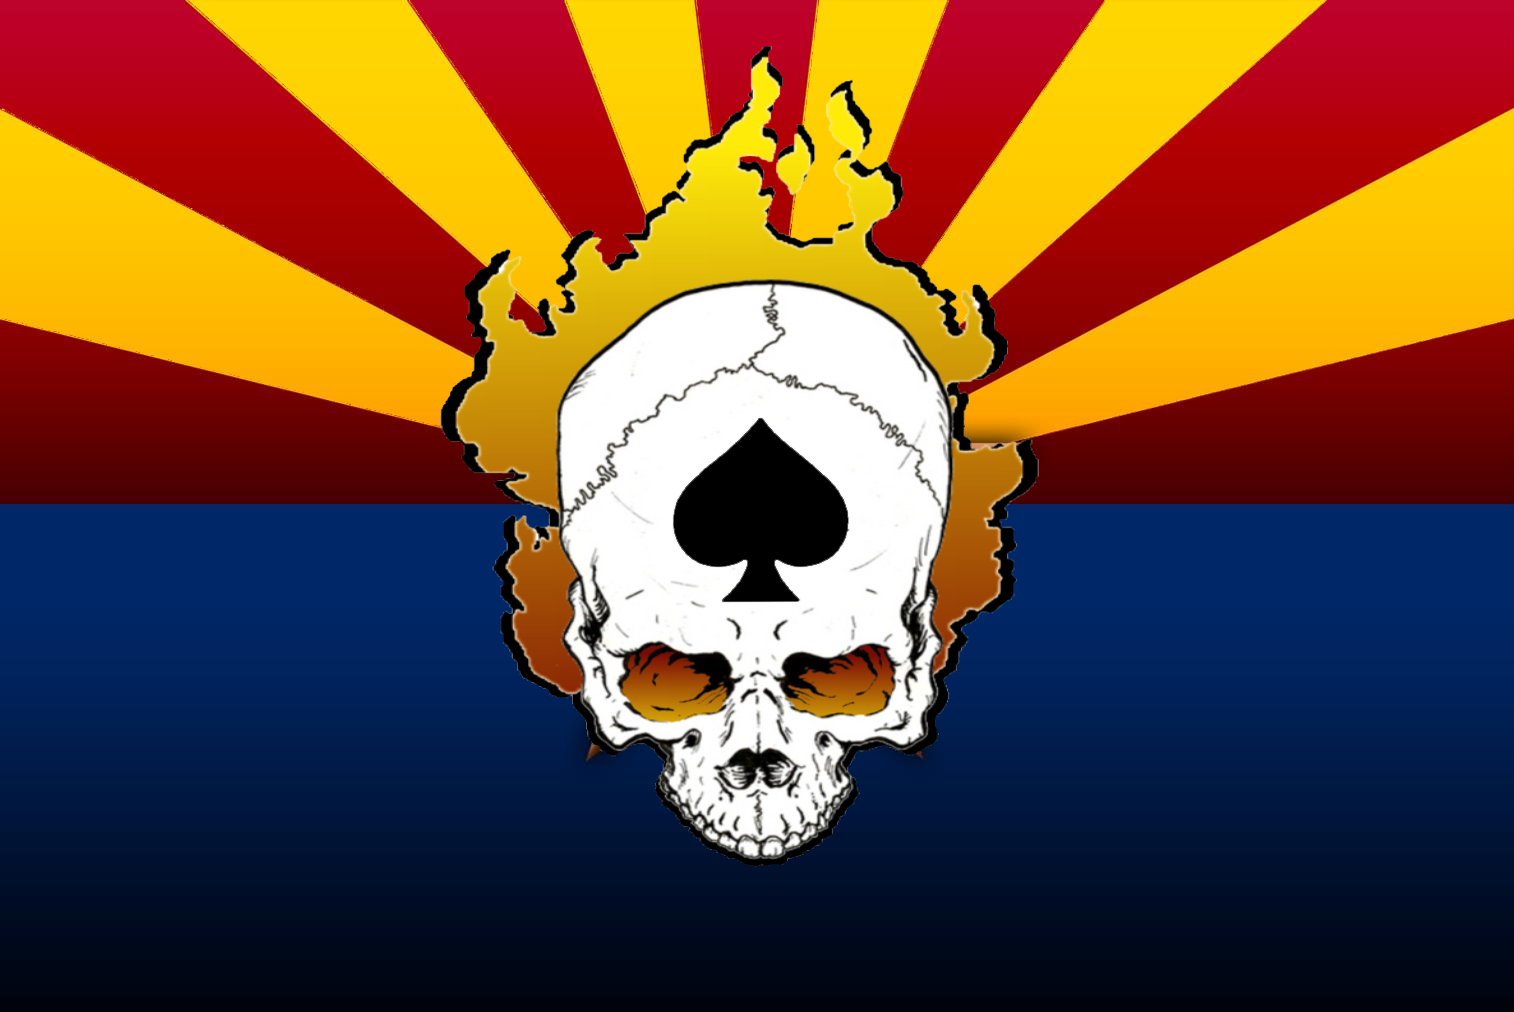 az_flag with Skull&Spade